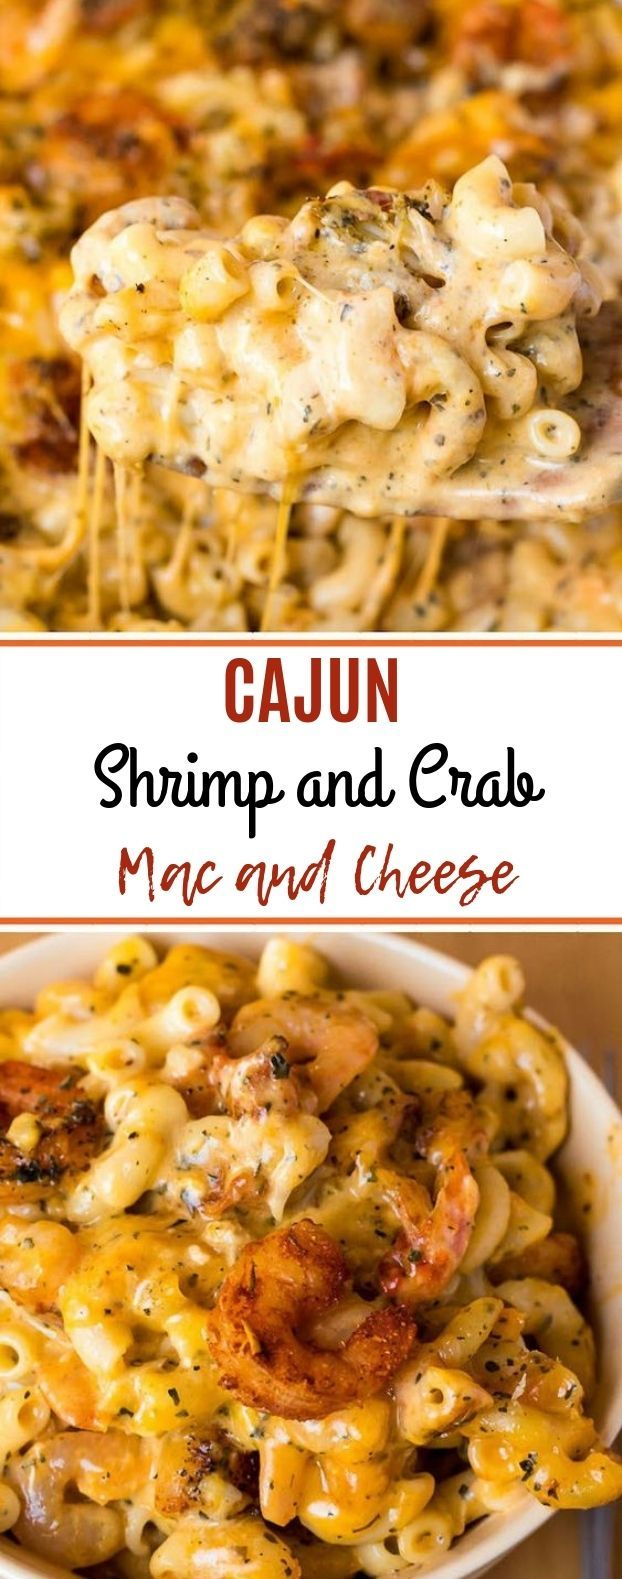 Cajun Shrimp and Crab Mac and Cheese #Macandcheese #Dinner – #cajun #dinner #maca …   – FOOD